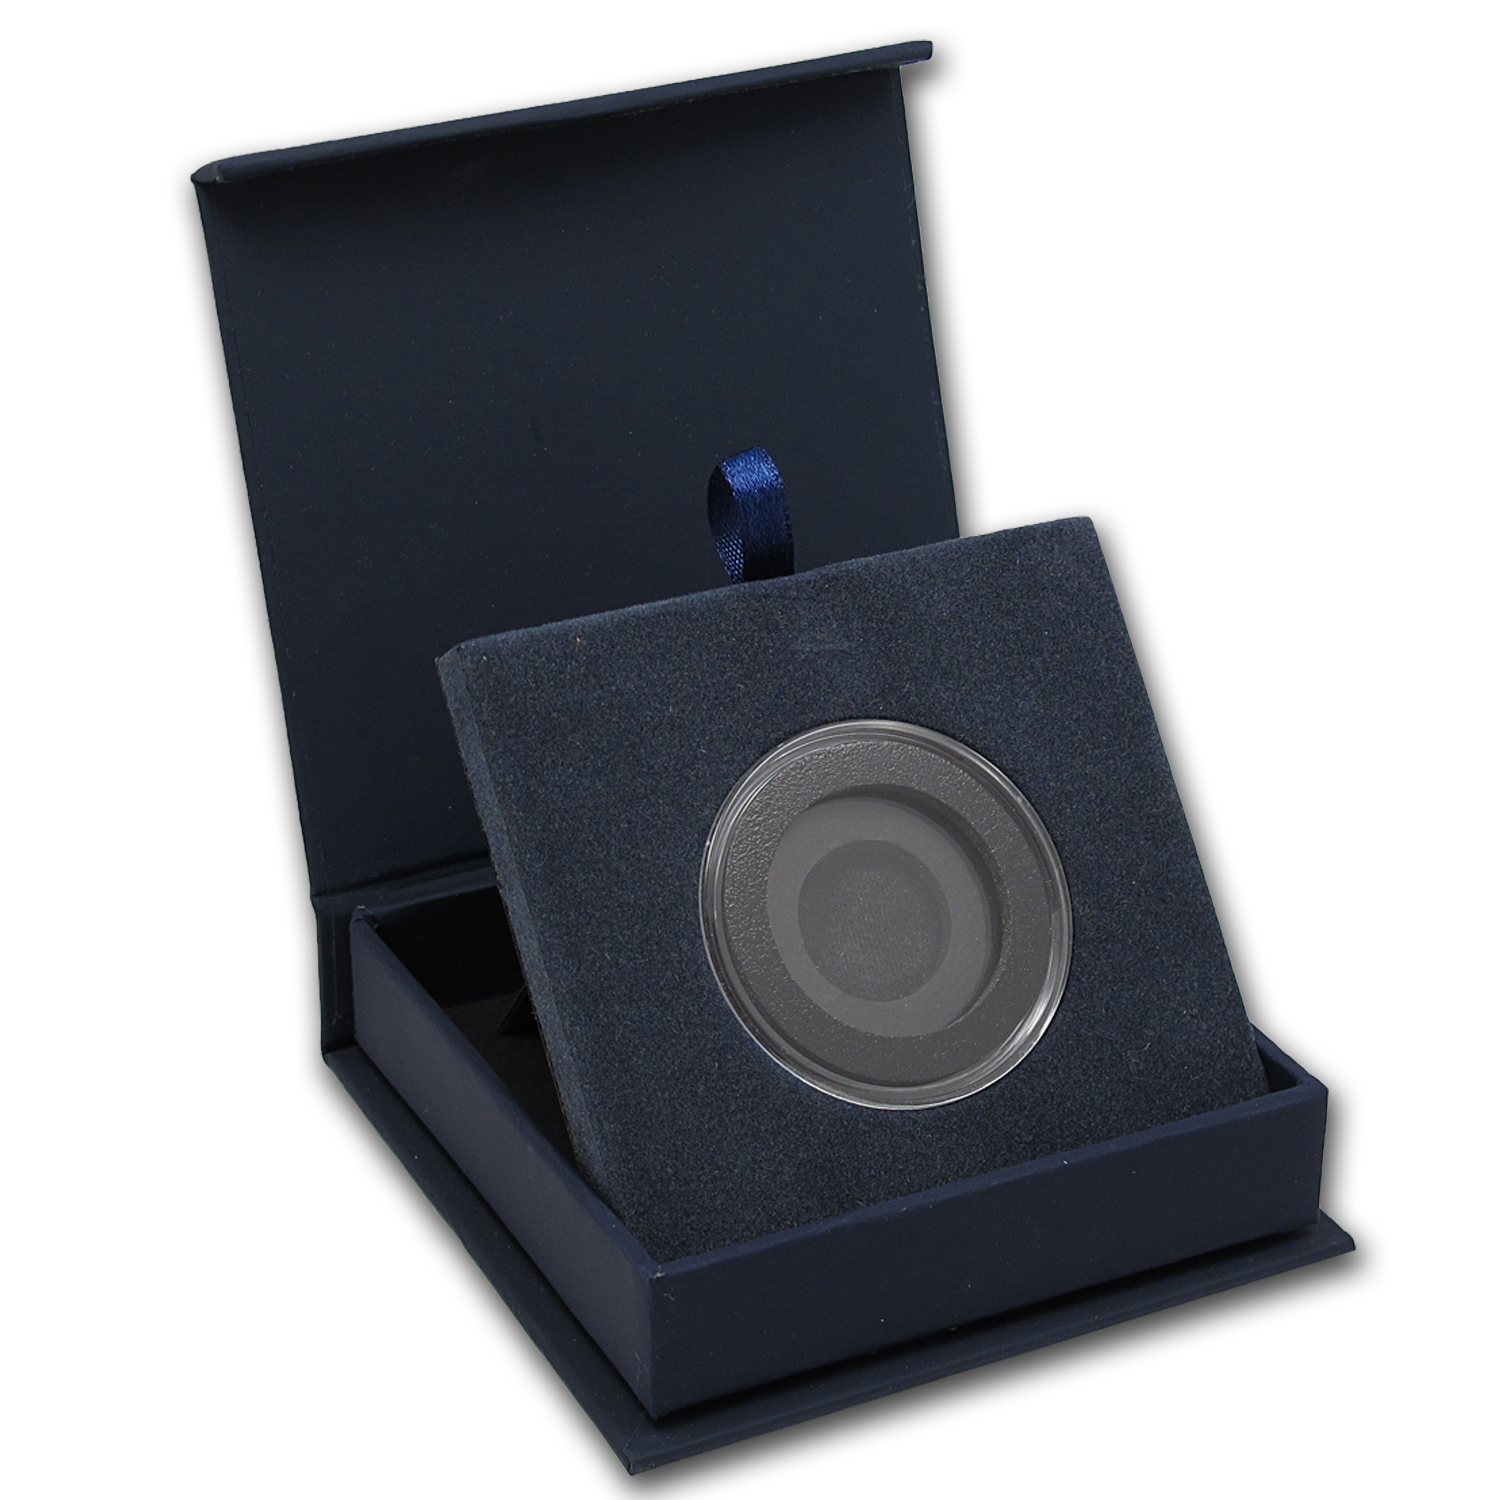 APMEX Gift Box - Includes 29 mm Air-Tite Holder with Gasket